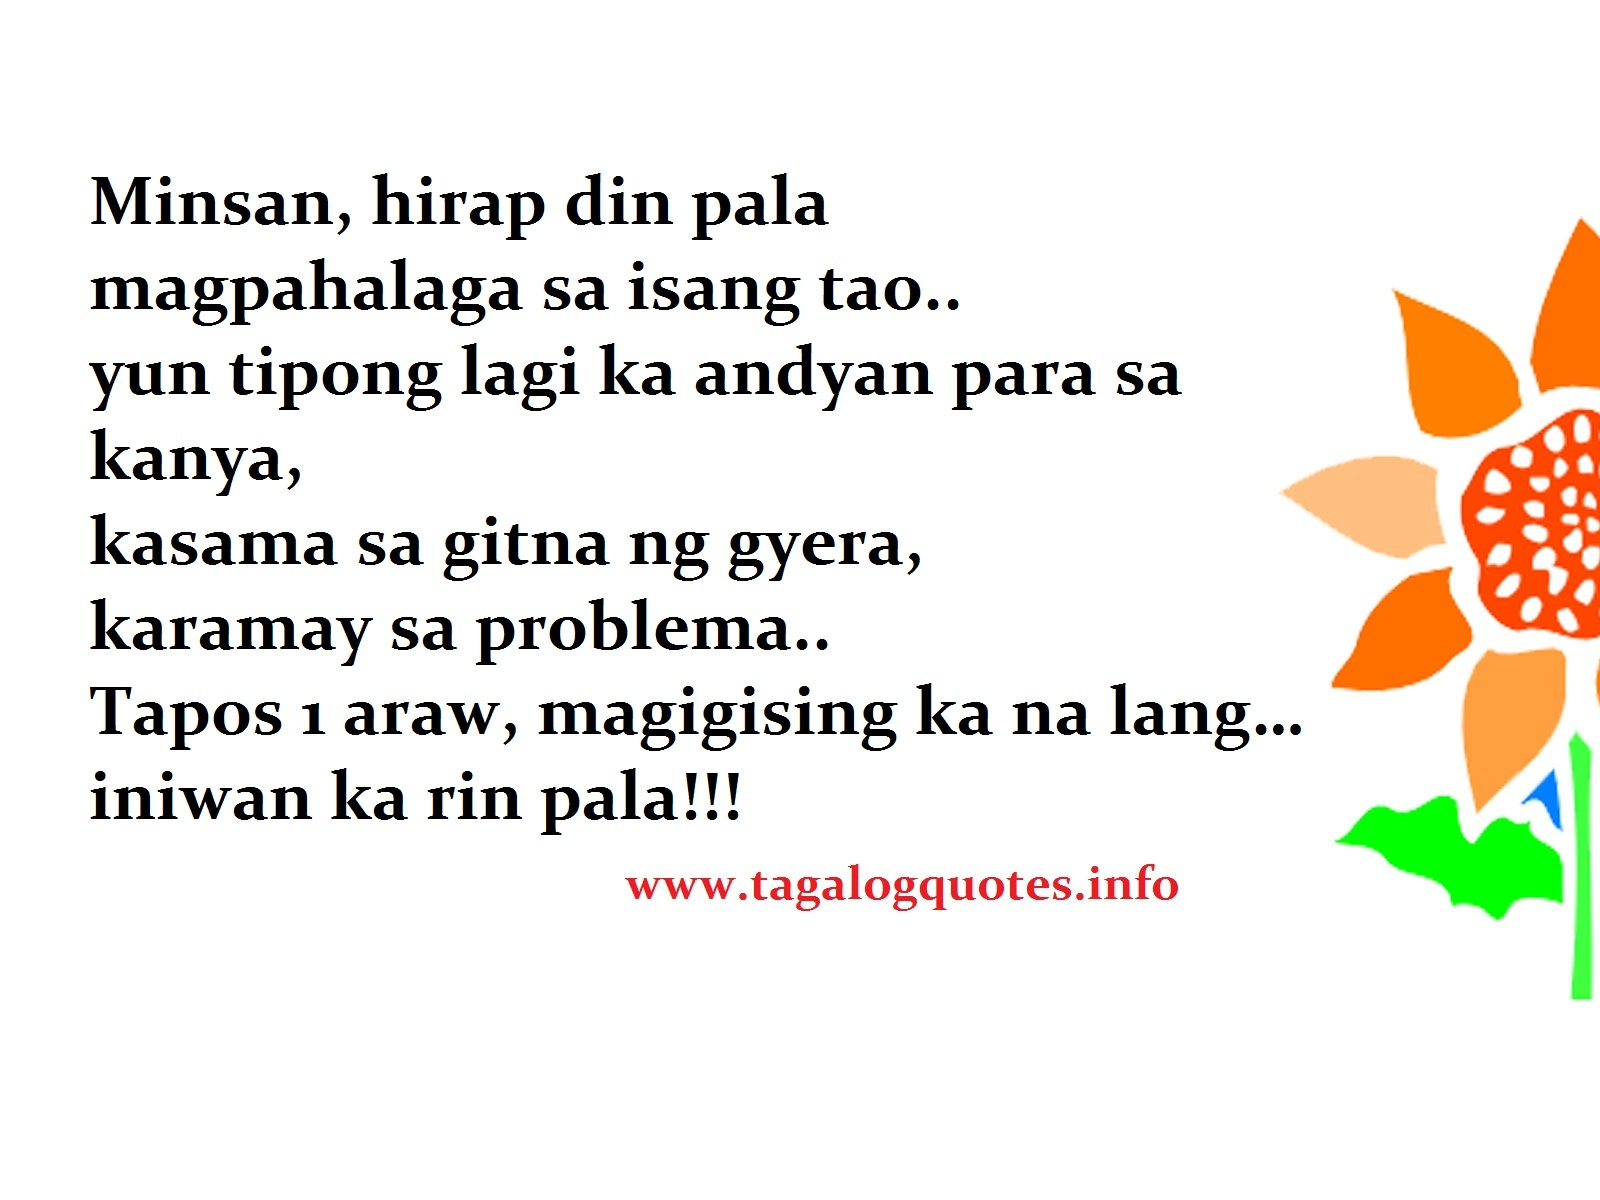 Sad Love Story Quotes Text Tagalog Image Quotes At: Tagalog Sad Love Quotes. QuotesGram